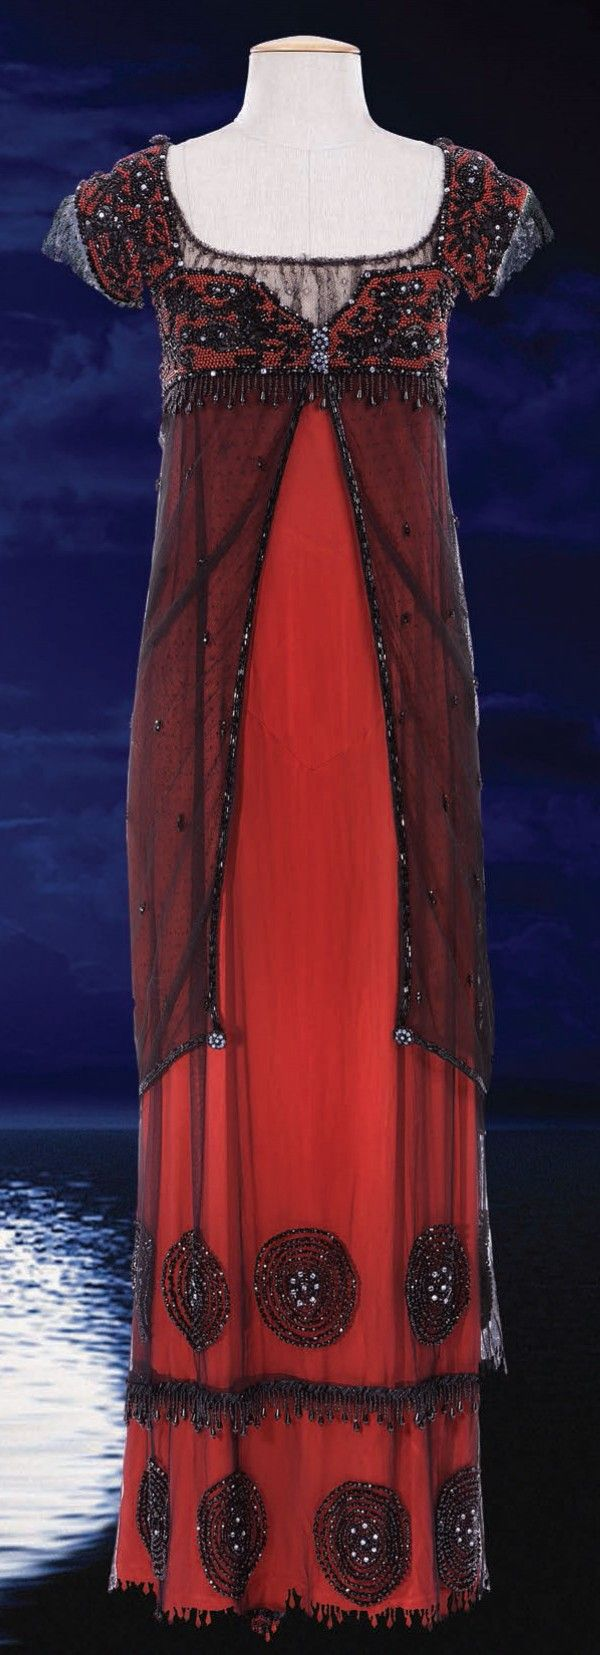 Kate Winslet's dress from the Titanic Movie... One of the prettiest dresses she got to wear :)